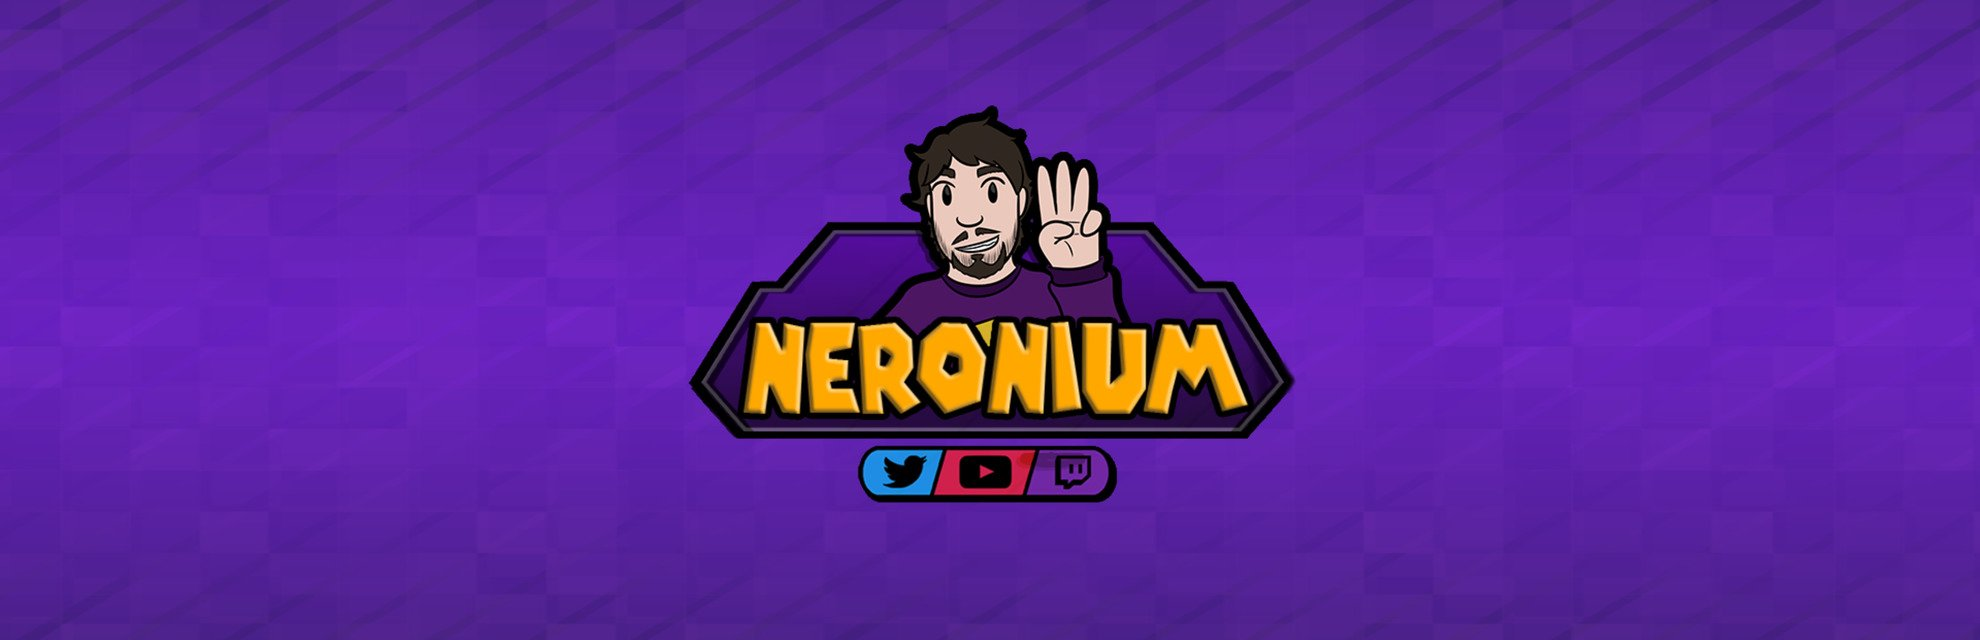 Neronium blog header photo